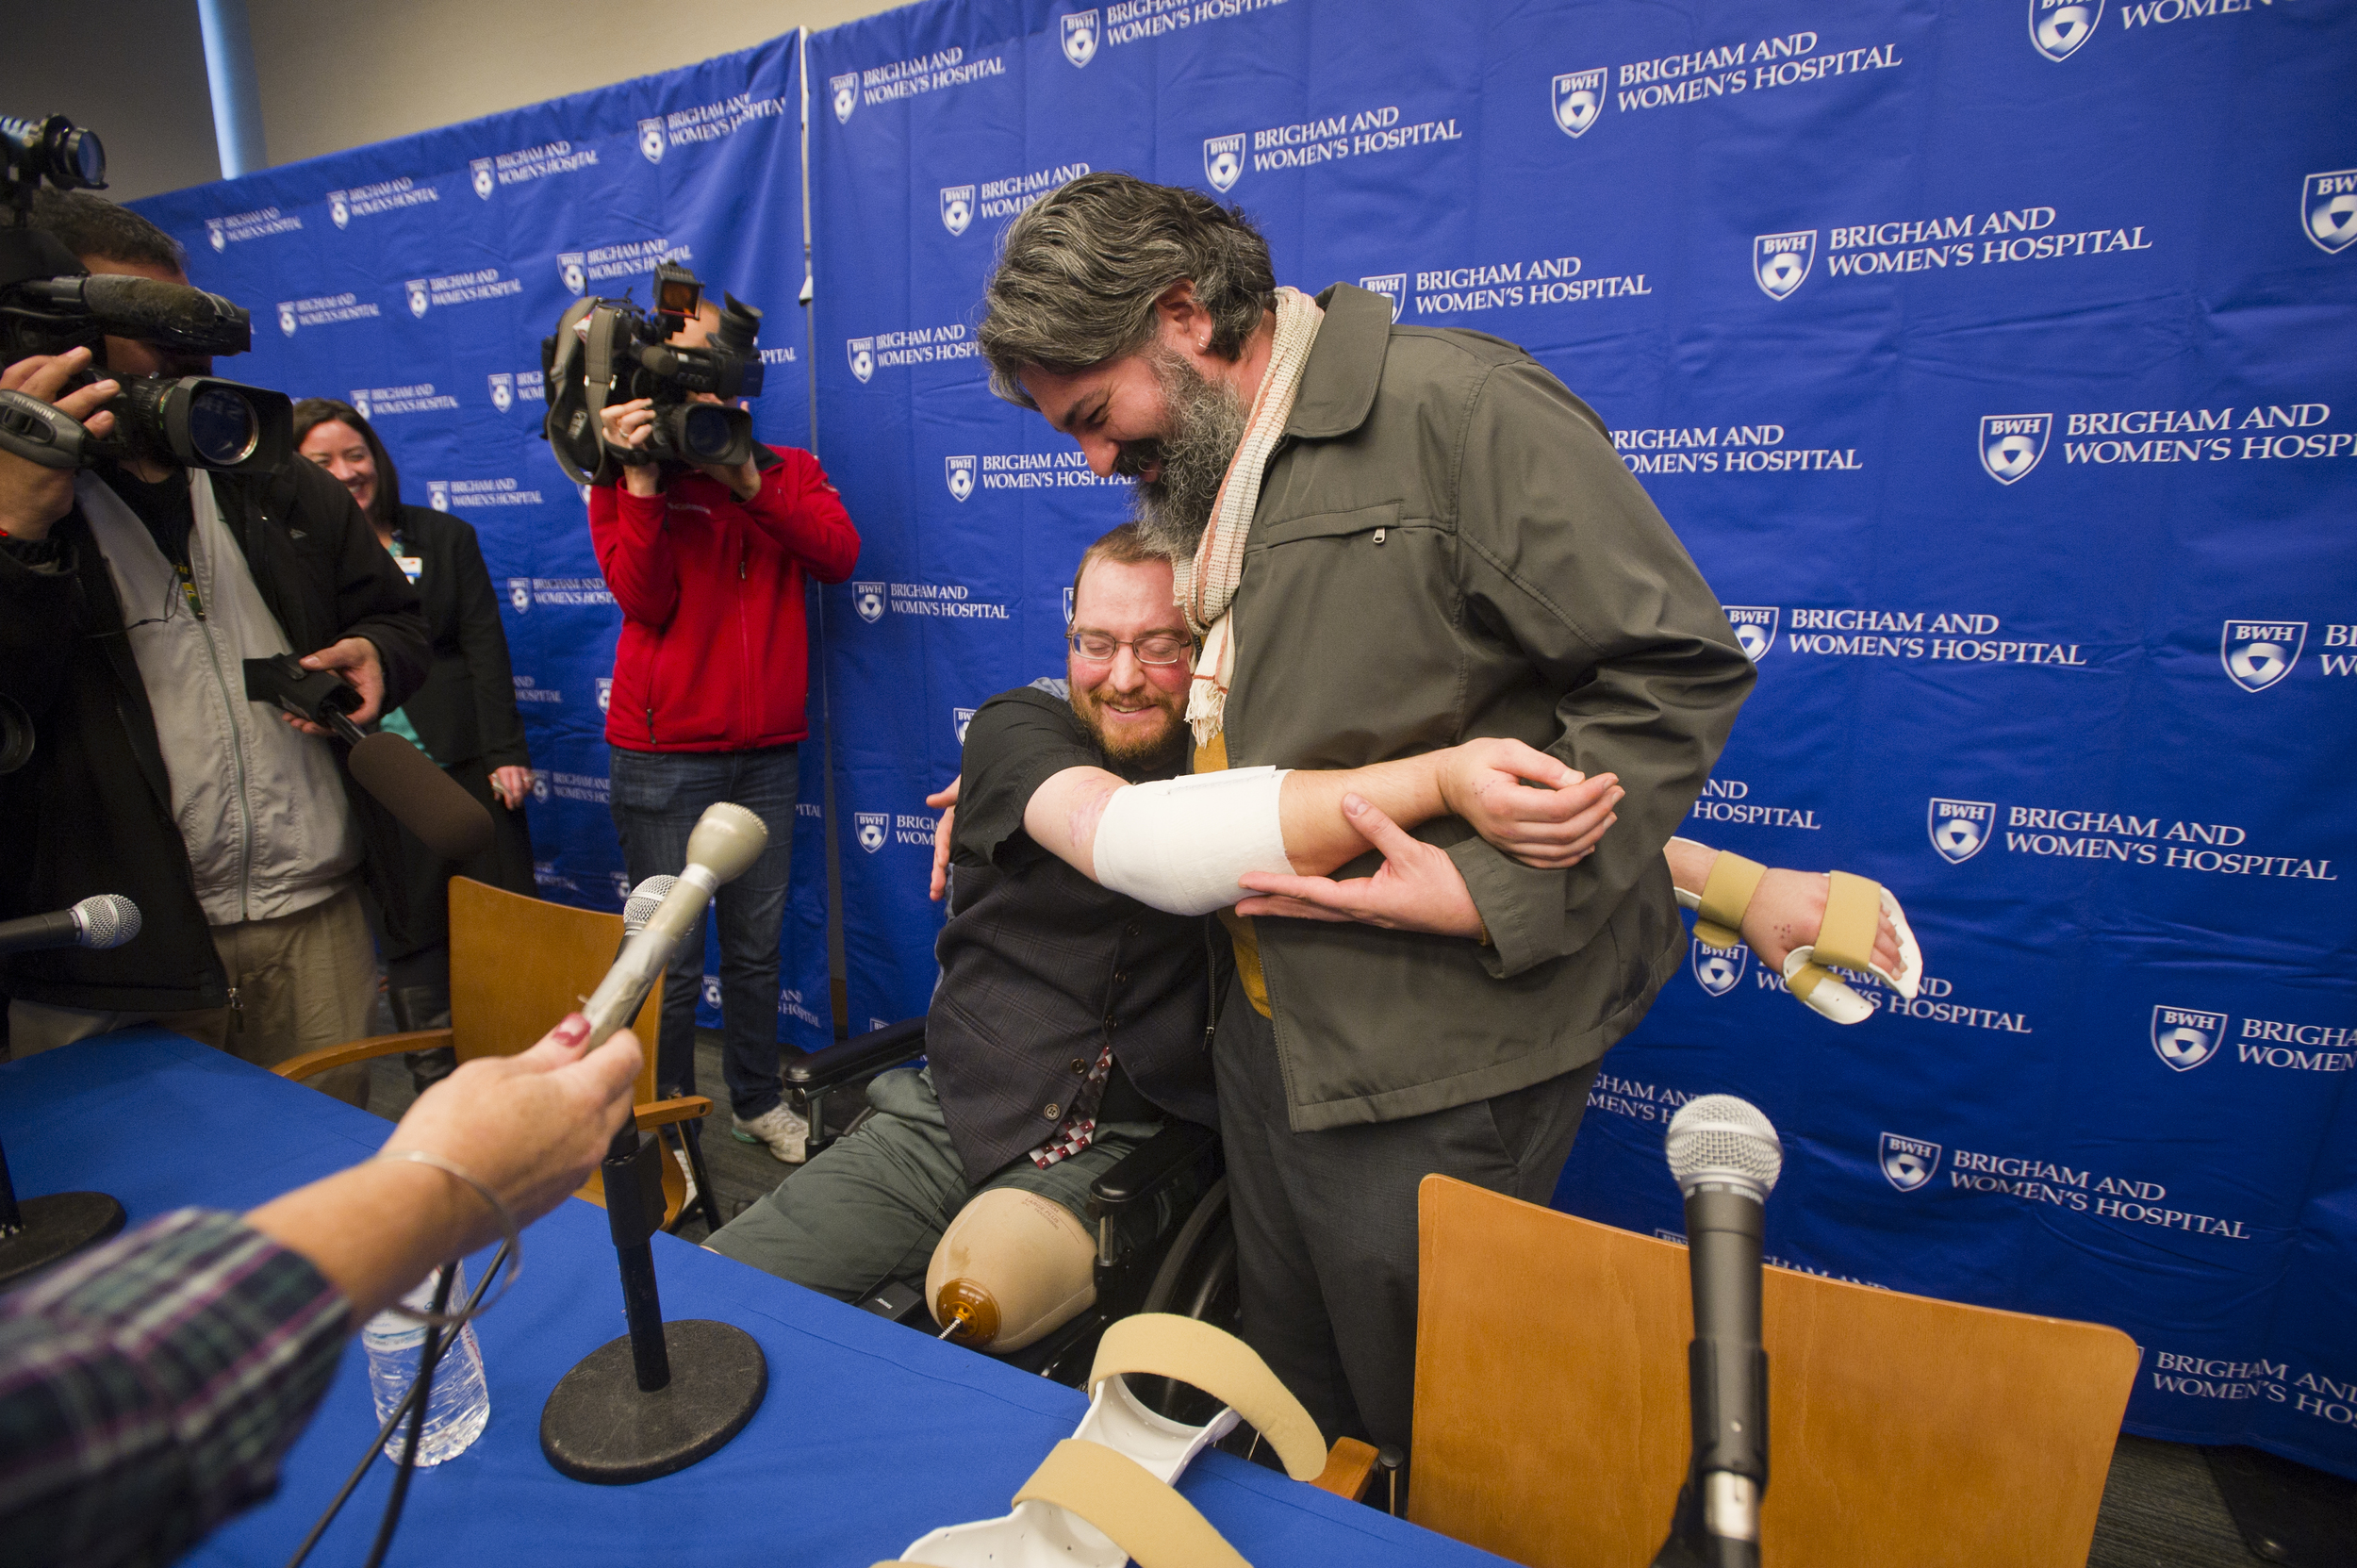 While he can't yet apply pressure to his arms, Will Lautzenheiser is still happy to demonstrate how he can now hug his partner Angle Gonzalez during a press conference to share the news of his successful bilateral arm transplant along with his surgeons Dr Matthew Carty, Dr. Simon Talbot, and Dr. Bohdan Pomahac (not pictured) at Brigham and Women's Hospital (BWH) November 25, 2014. Lautzenheiser, 40, who became a quad amputee in 2011 following a life threatening streptococcal infection received his new limbs from an anonymous donor in October.  Photo by Cydney Scott for Boston University Photography